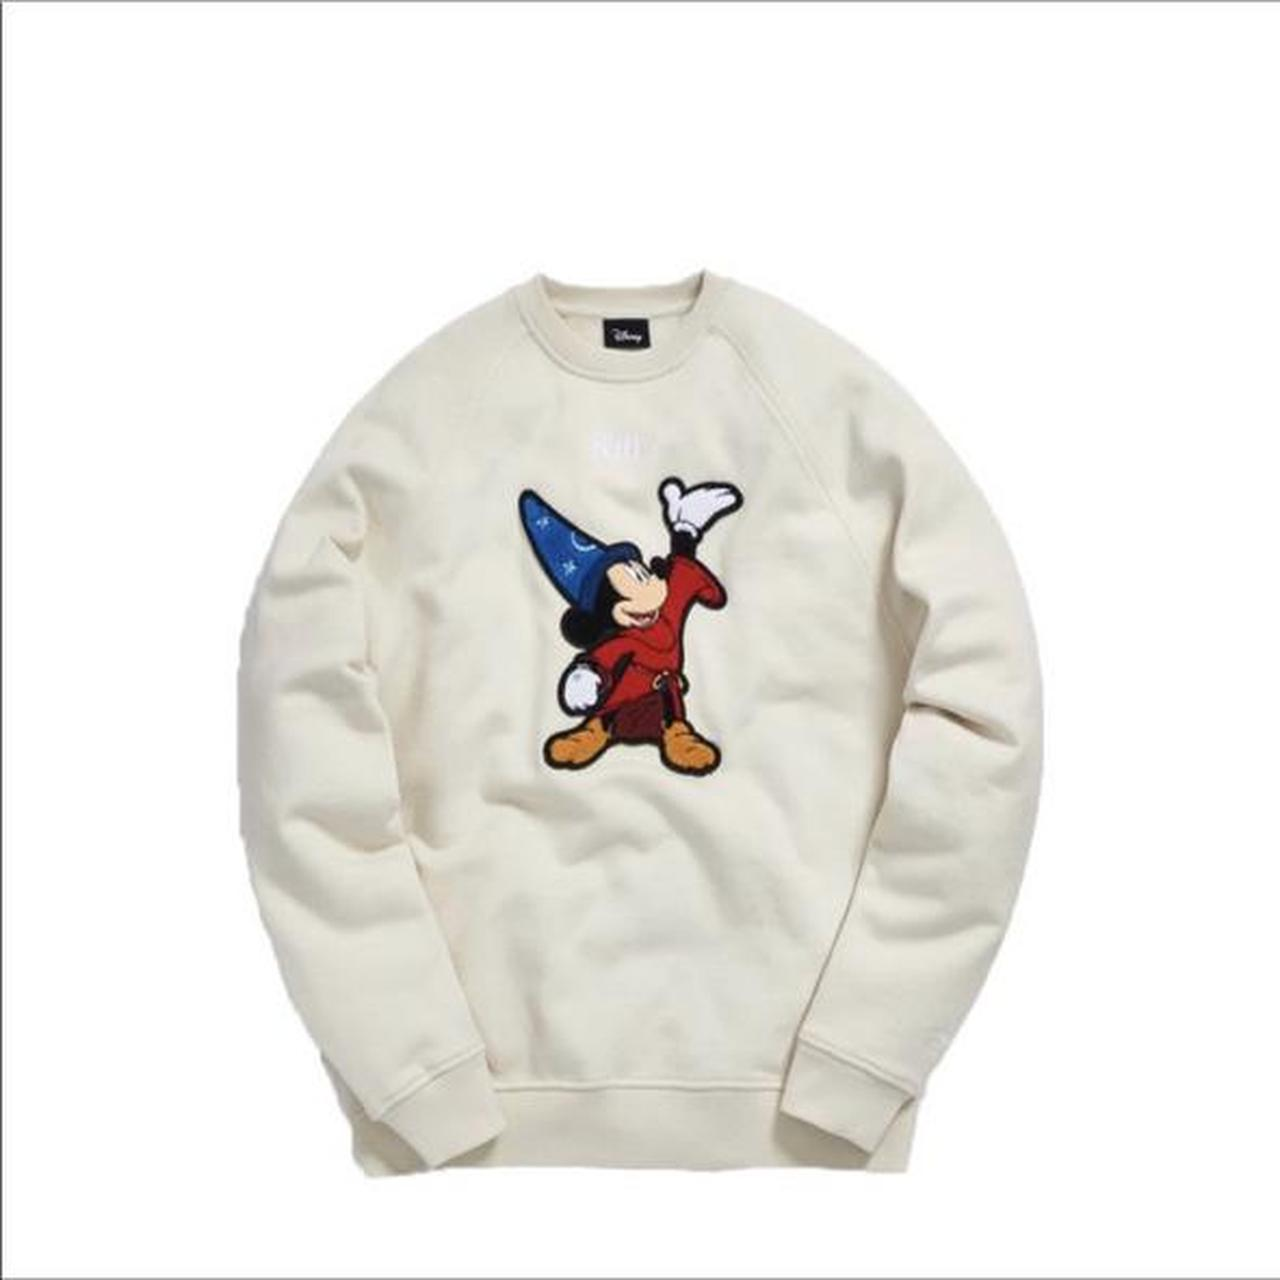 Product Image 1 - Kith mickey mouse crew neck